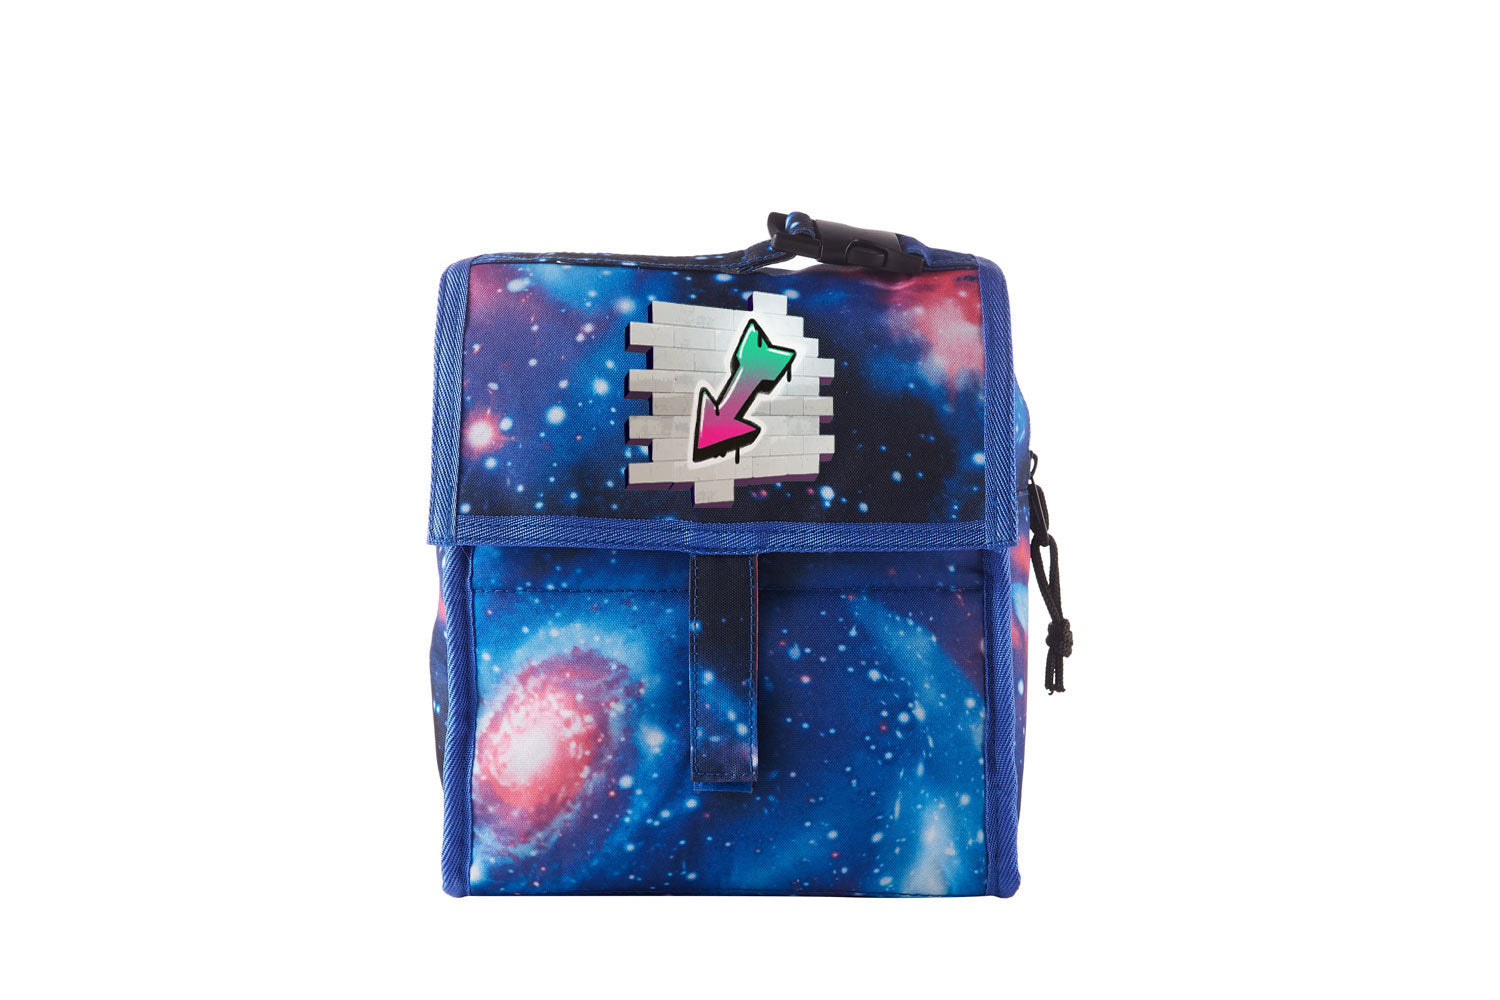 Battle Royale Sprays Arrow Starry Sky Freezable Lunch Bag with Zip Closure